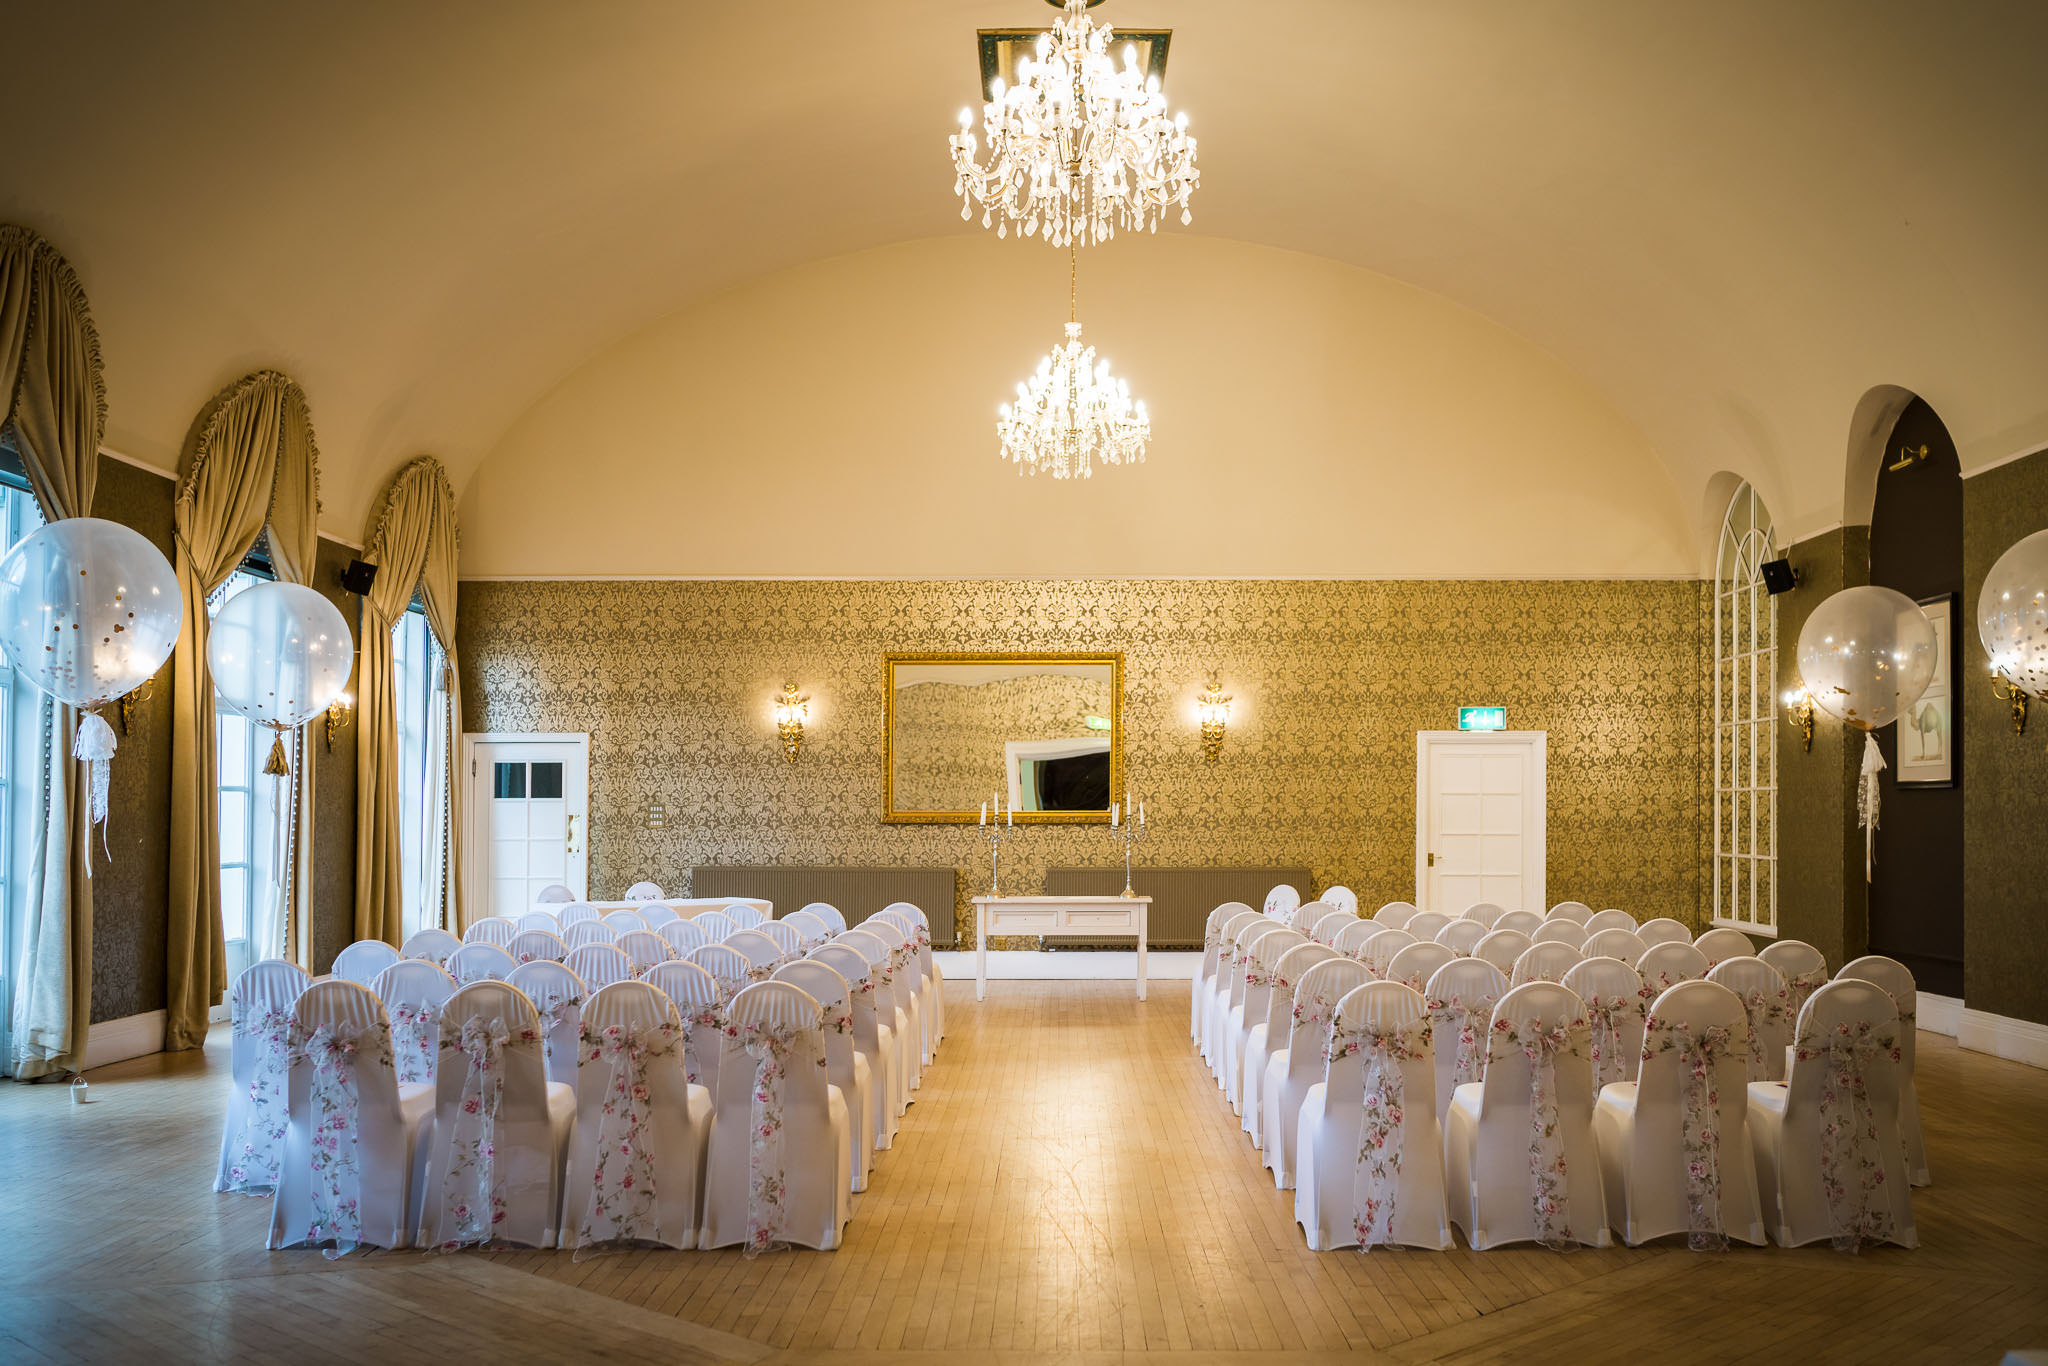 Clifton Pavilion - a very special ceremony room